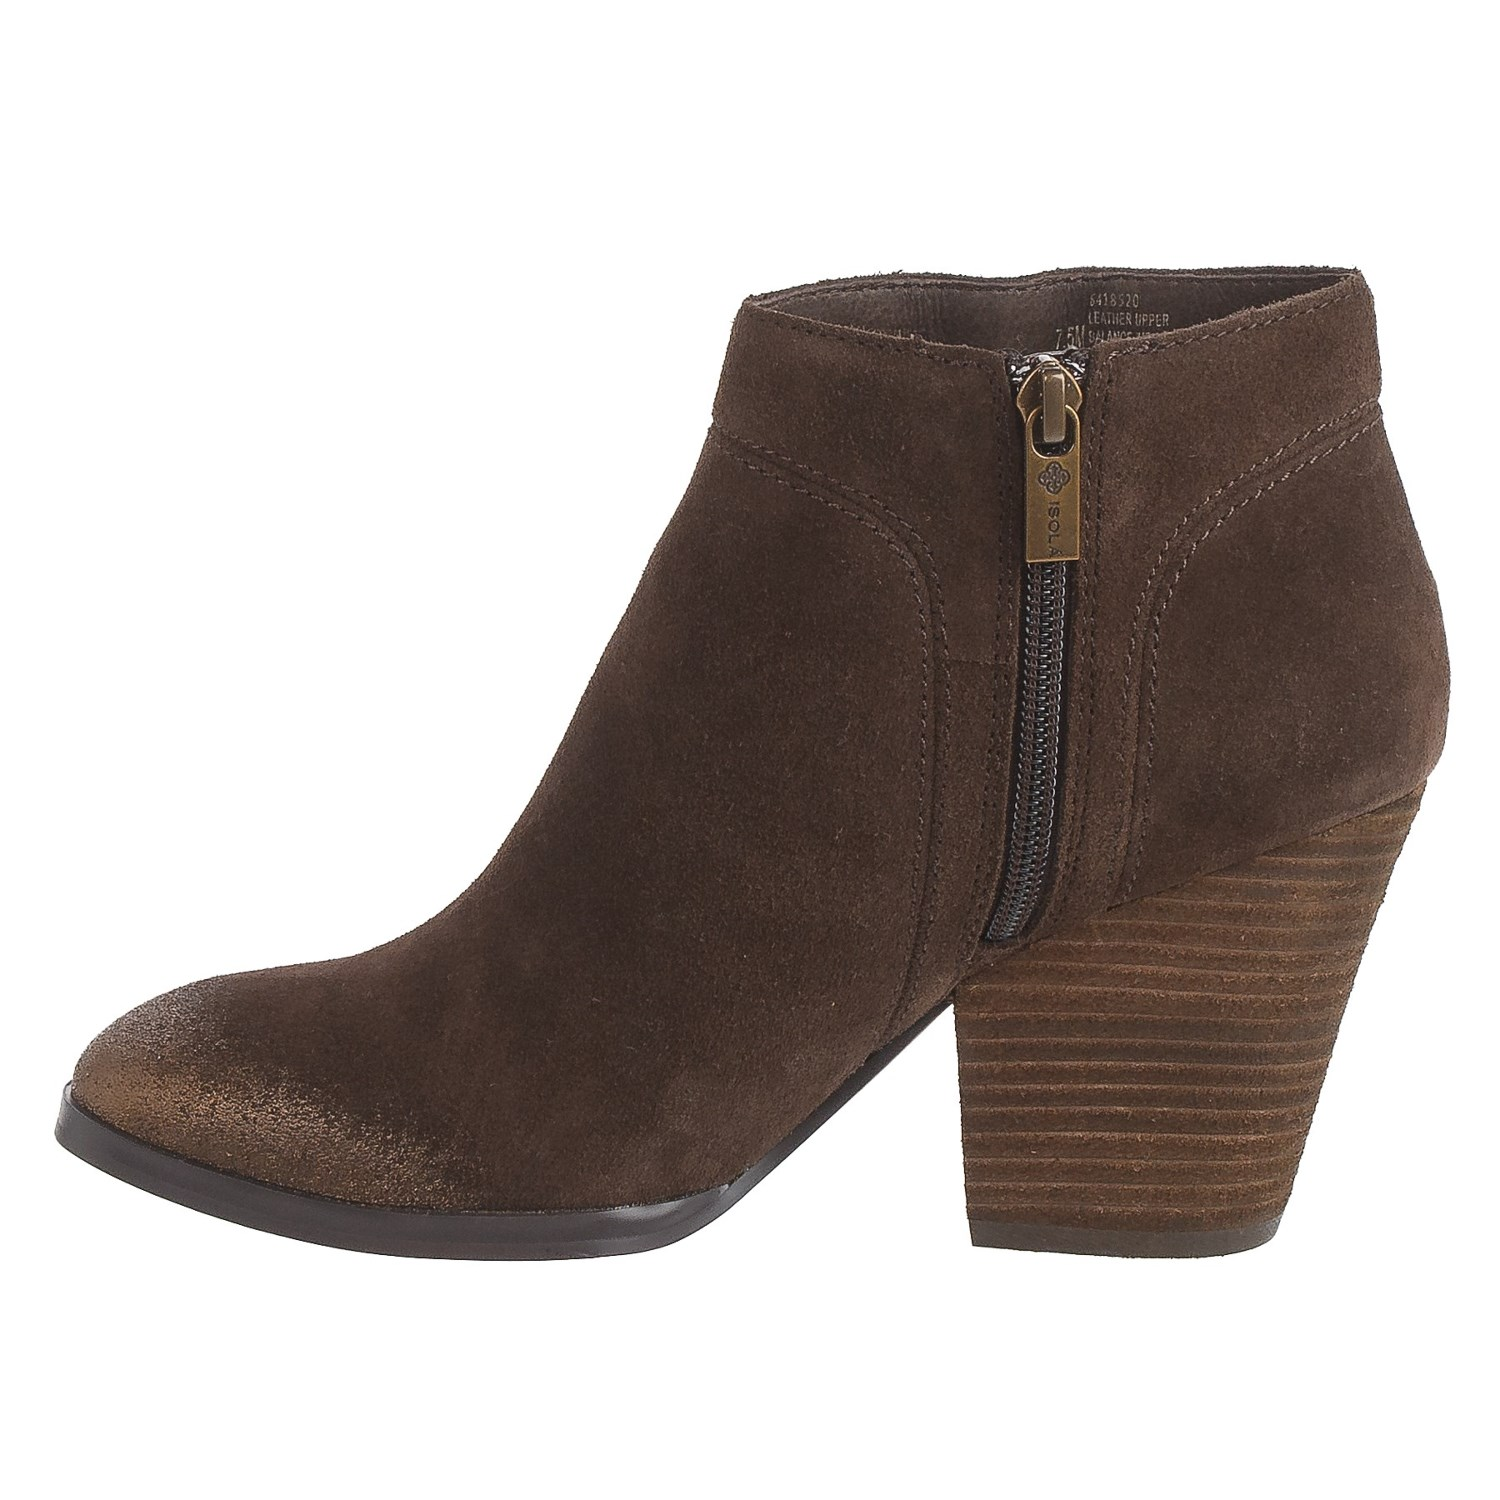 isola leandra dress boots for save 71